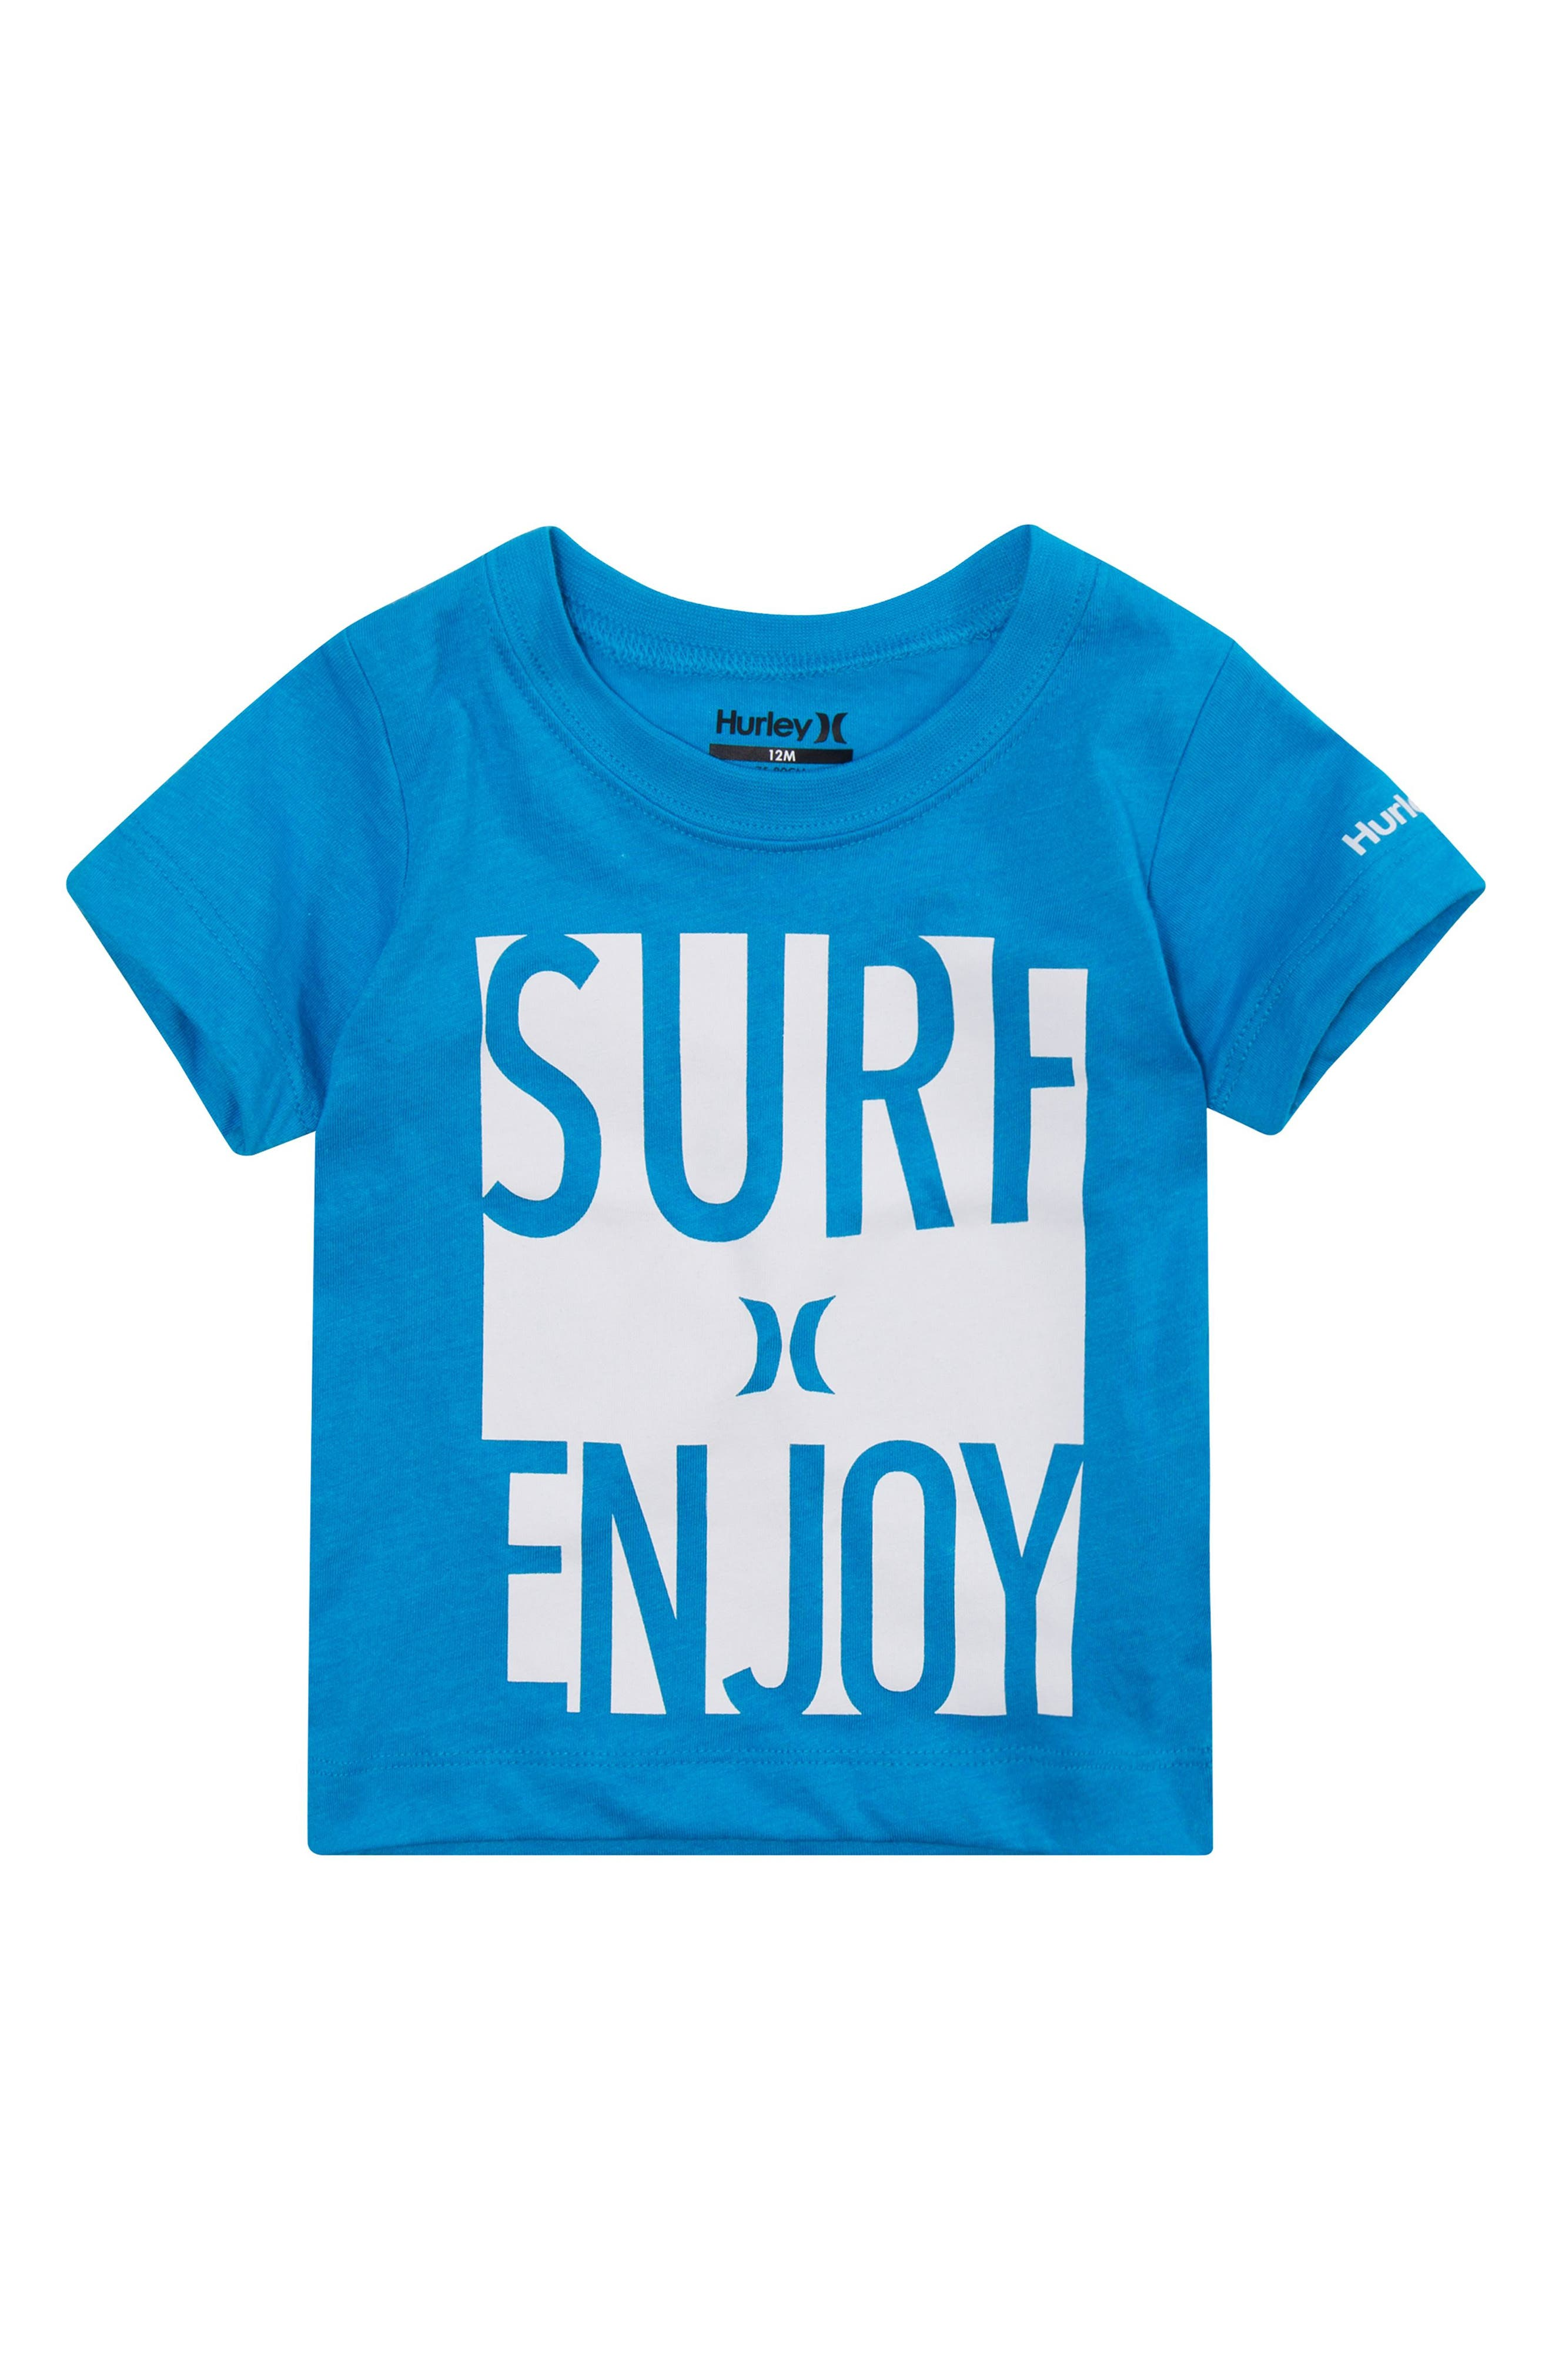 Surf & Enjoy Graphic T-Shirt,                         Main,                         color, 400